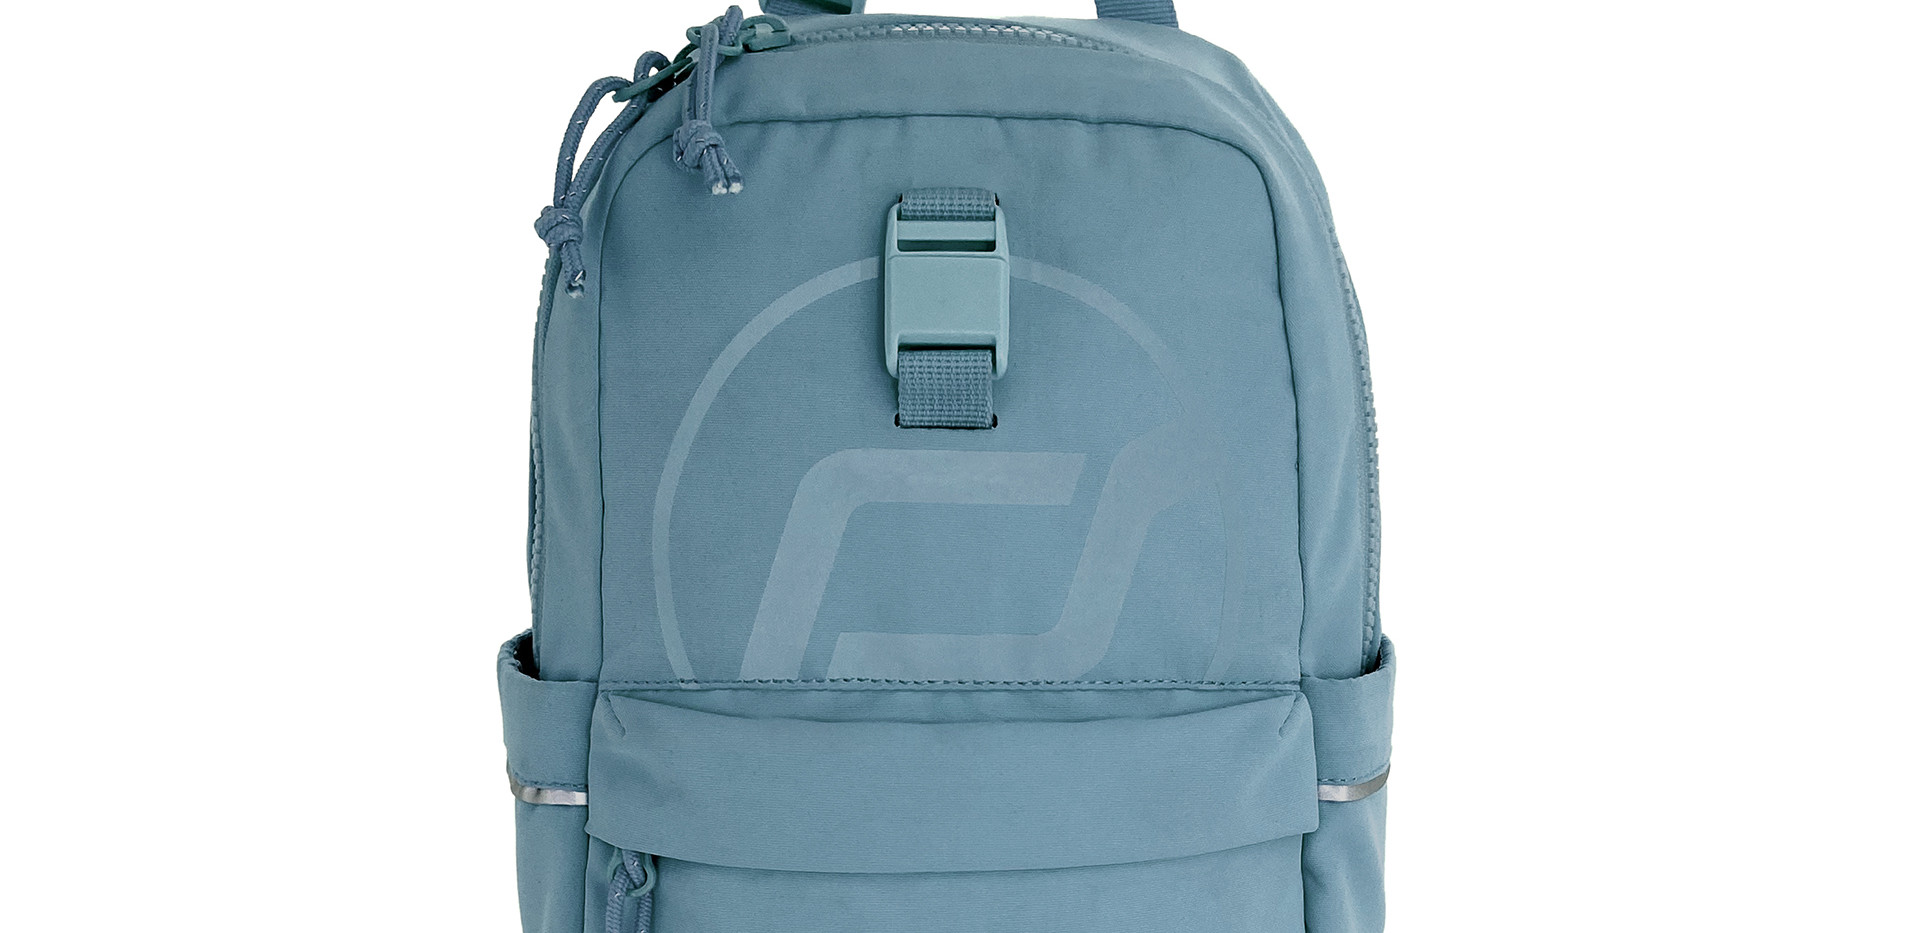 size_product_shoppicture_backpack_steel0